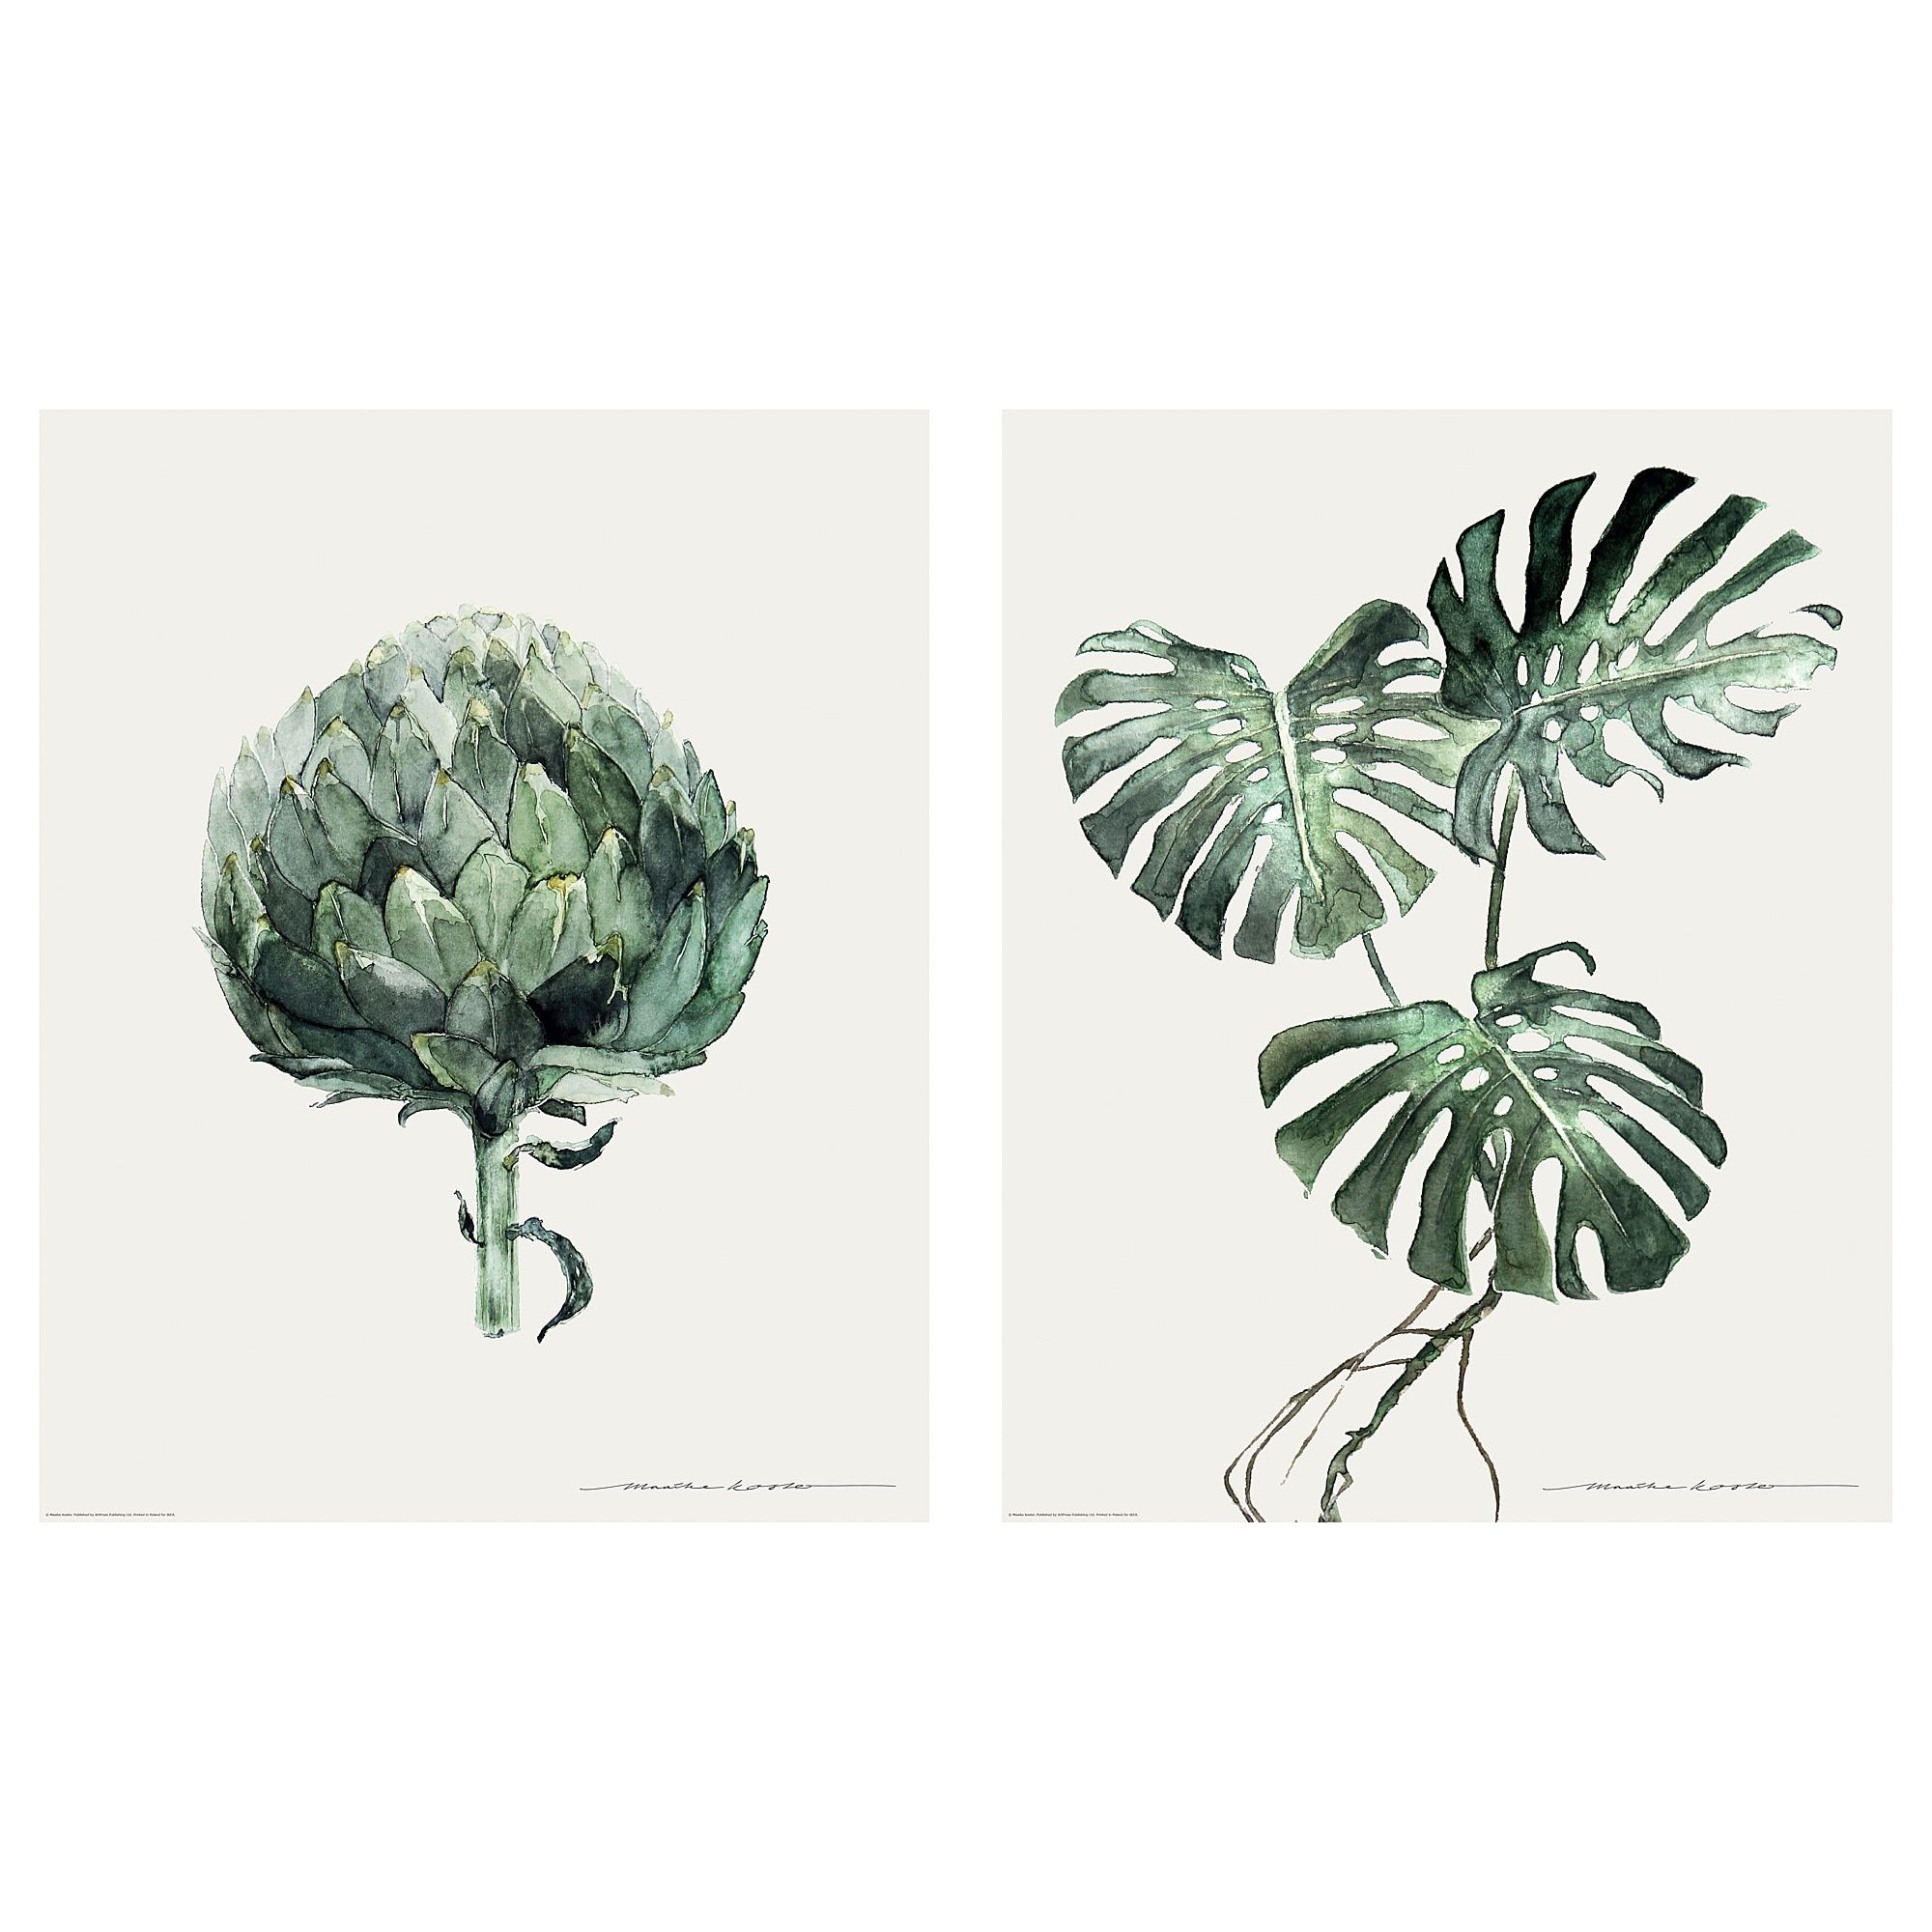 Ikea Poster Tvilling Poster Set Of 2 Green Leaves In 2019 Apartment Ikea